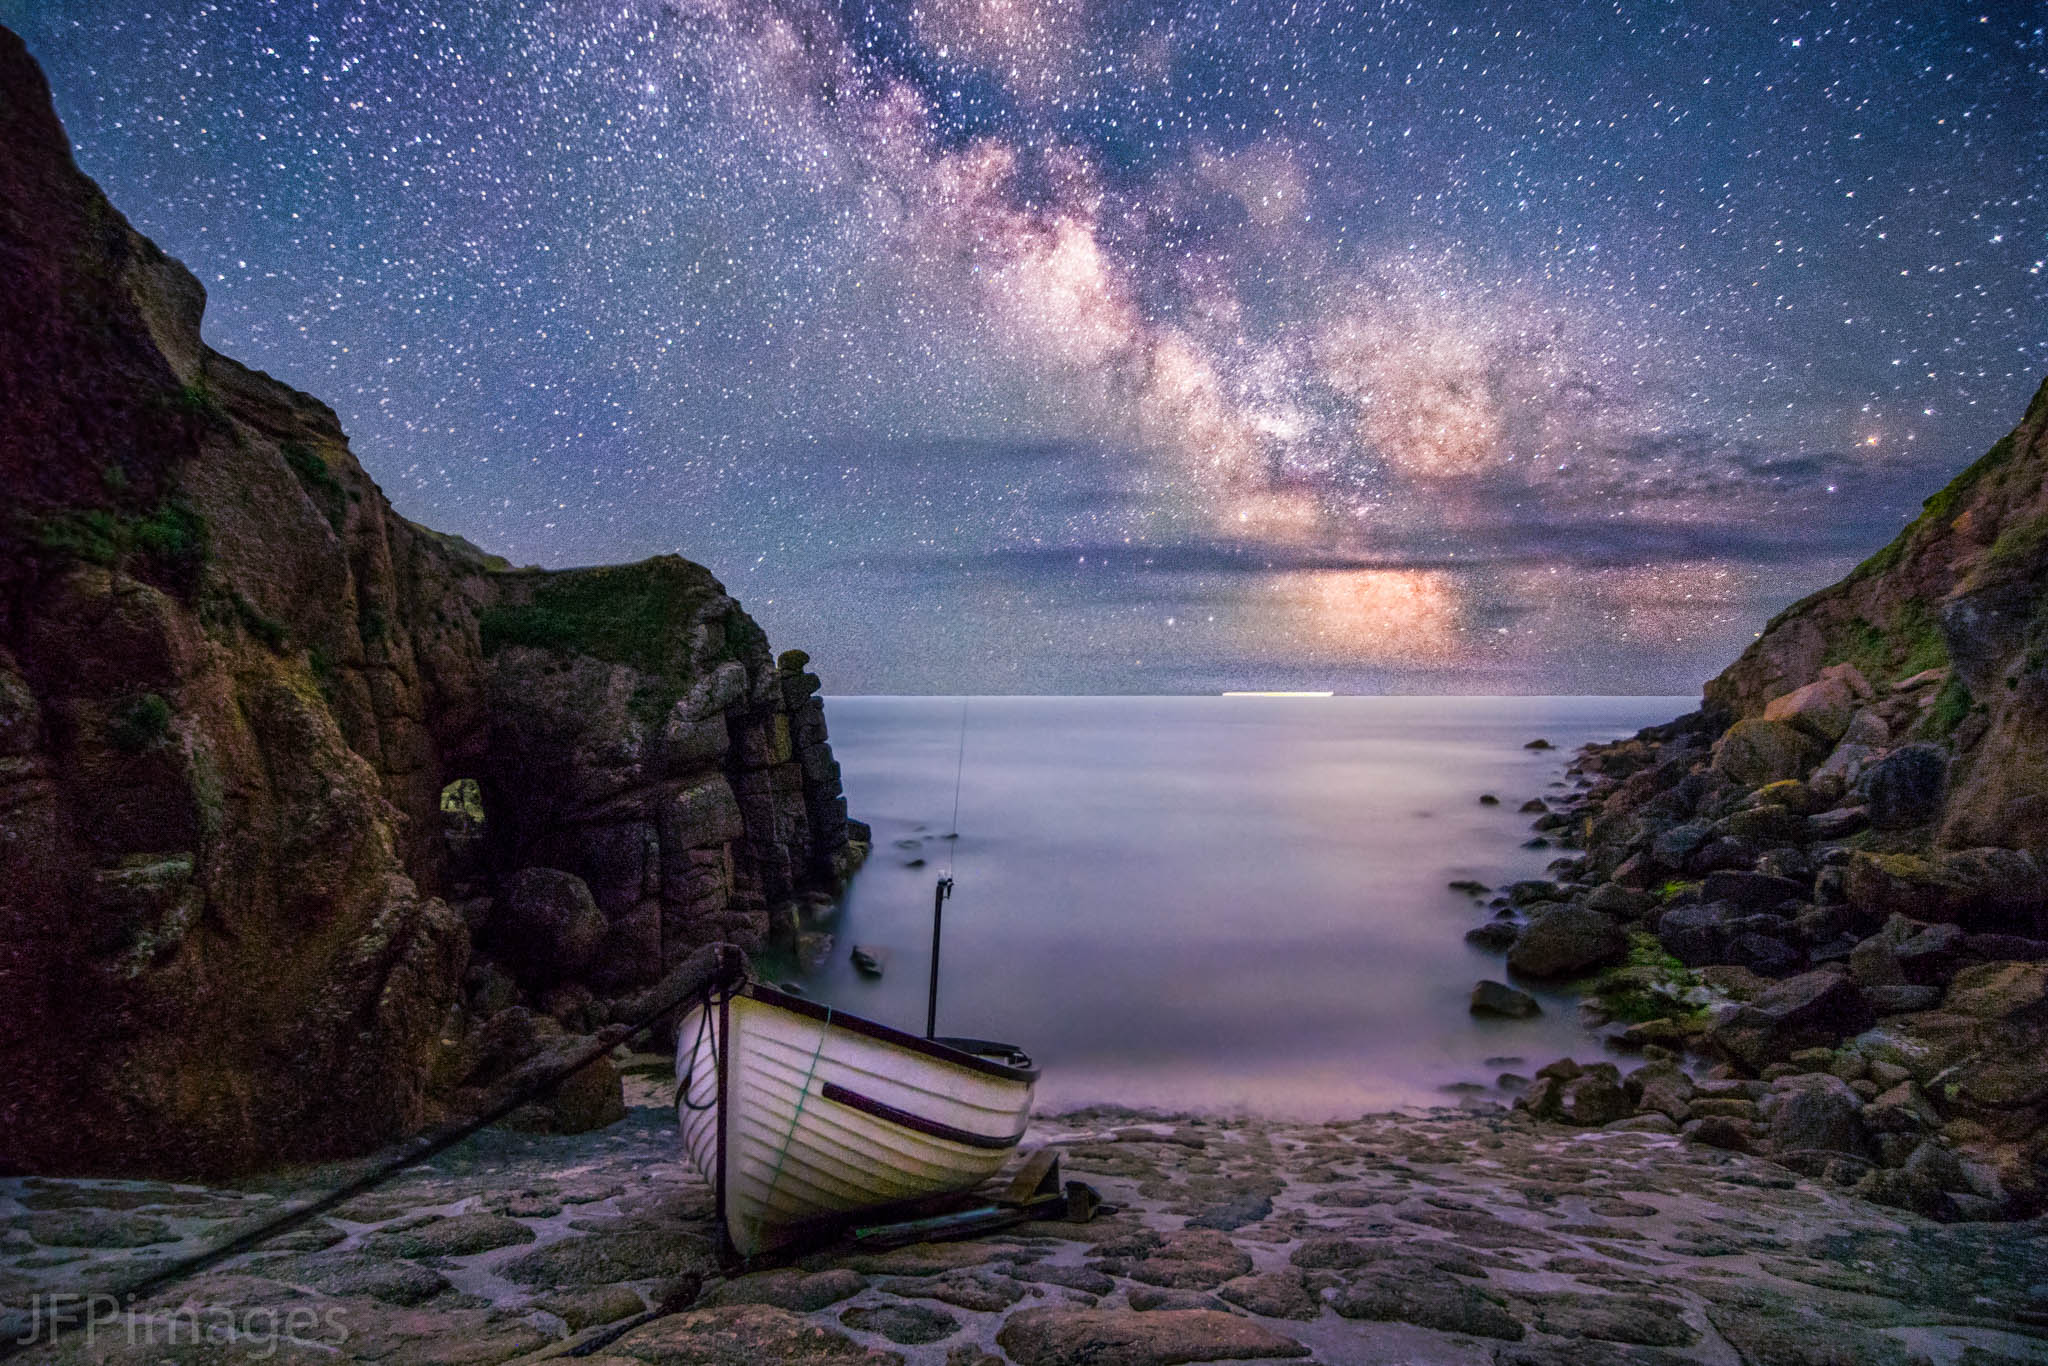 Milky way above Porthgwarra